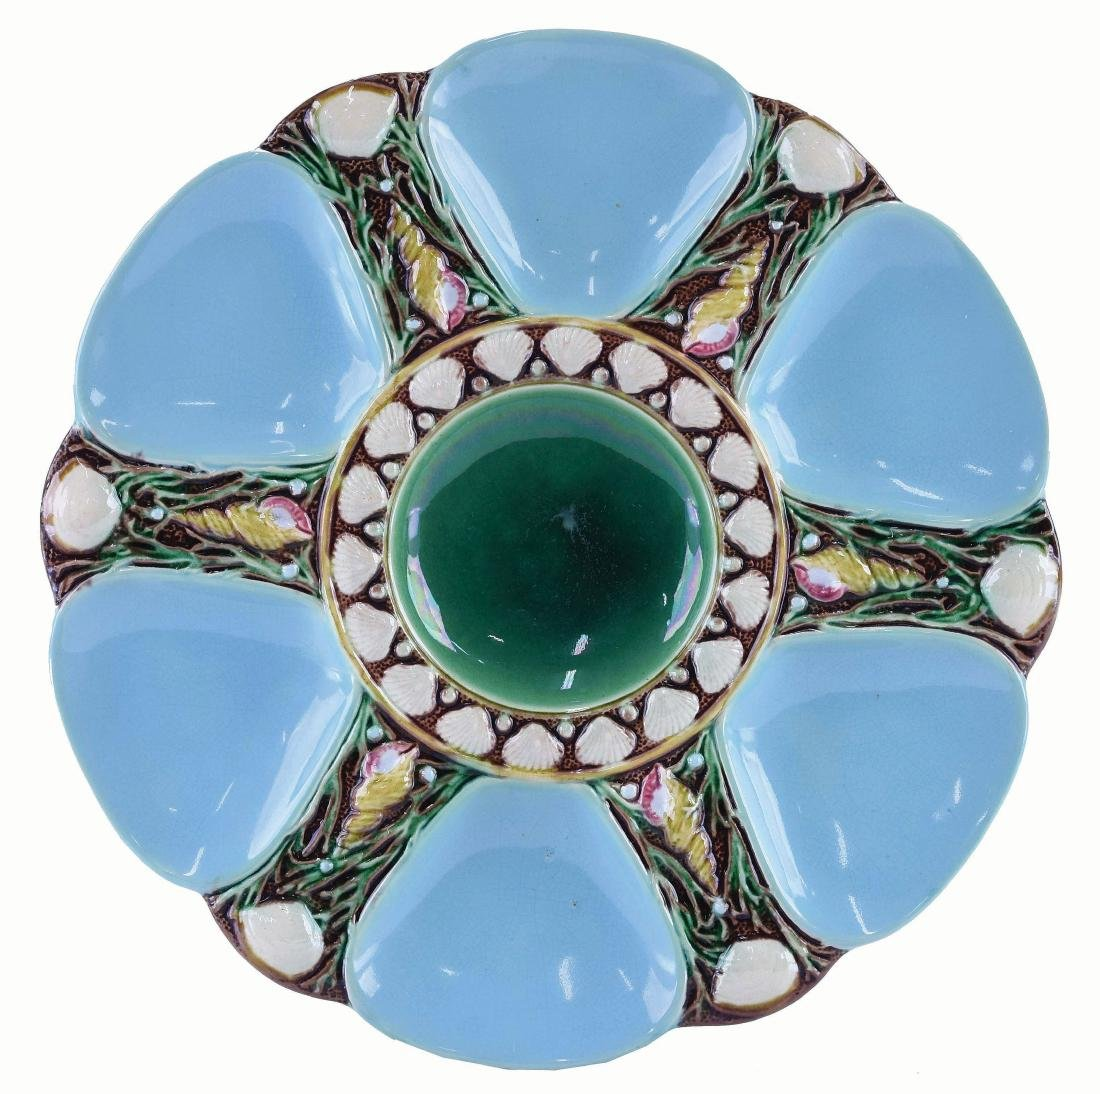 Minton Majolica Six Well Turquoise Oyster Plate